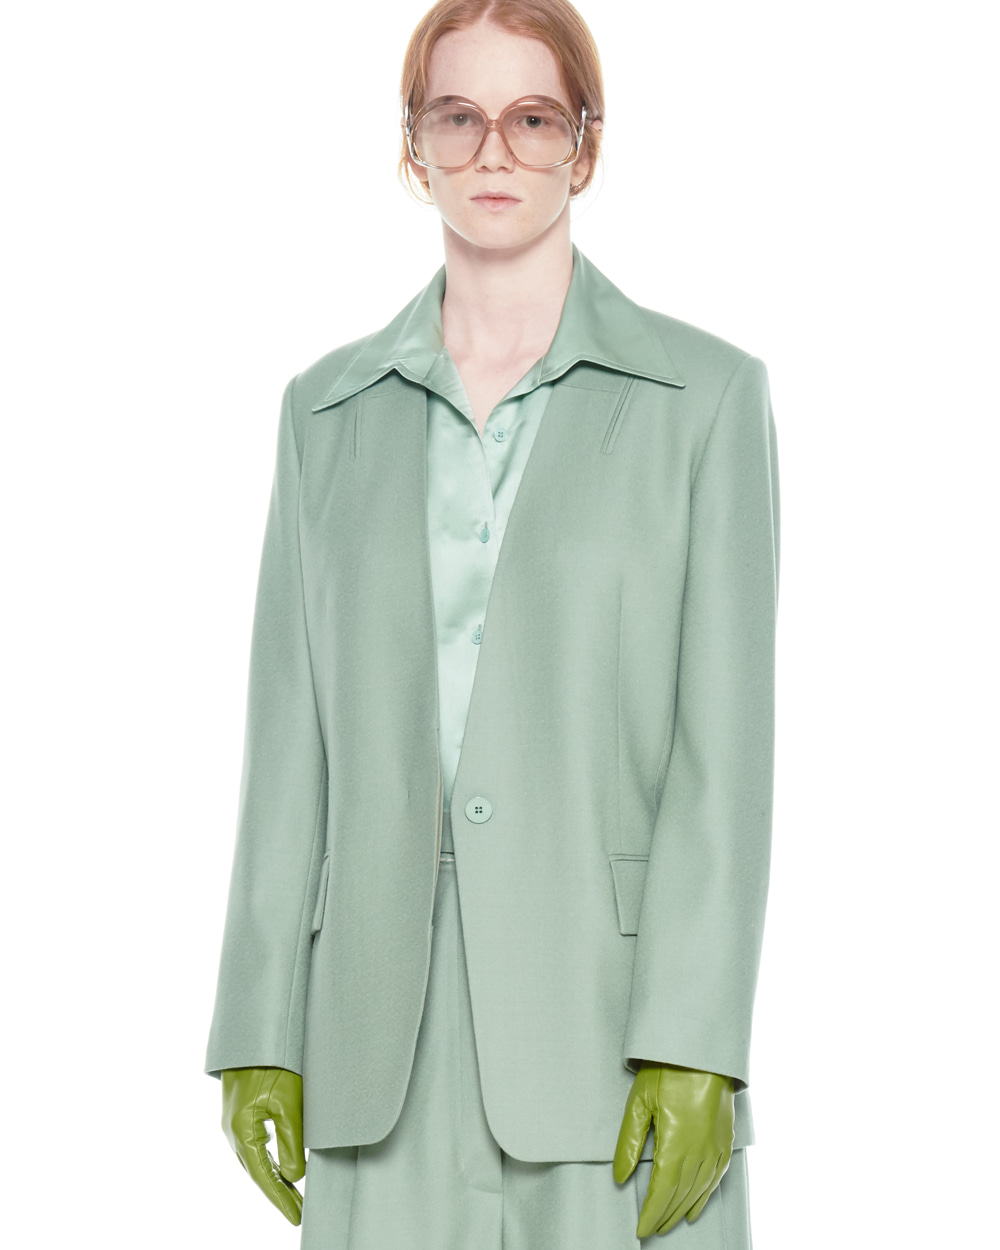 FW20 COLLARLESS POCKET DETAIL MINT JACKET